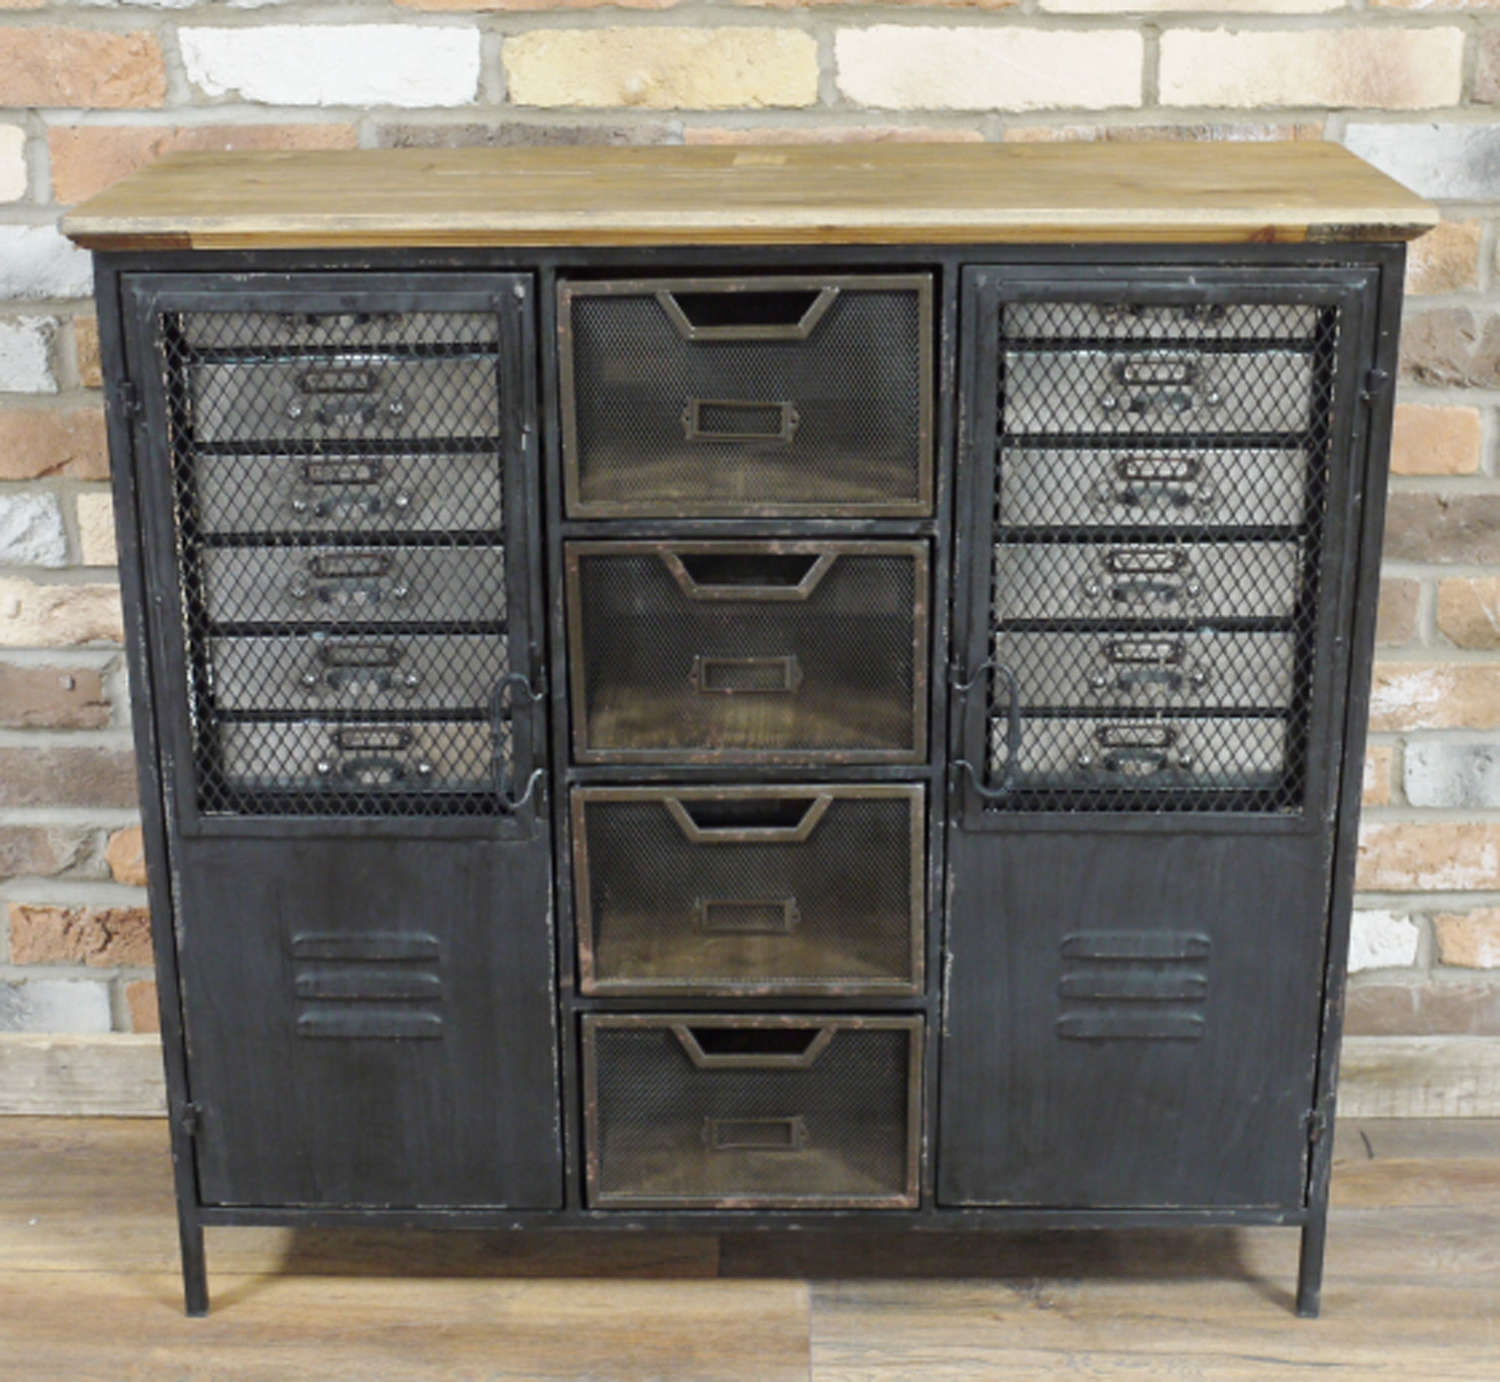 Industrial metal cabinet with drawers